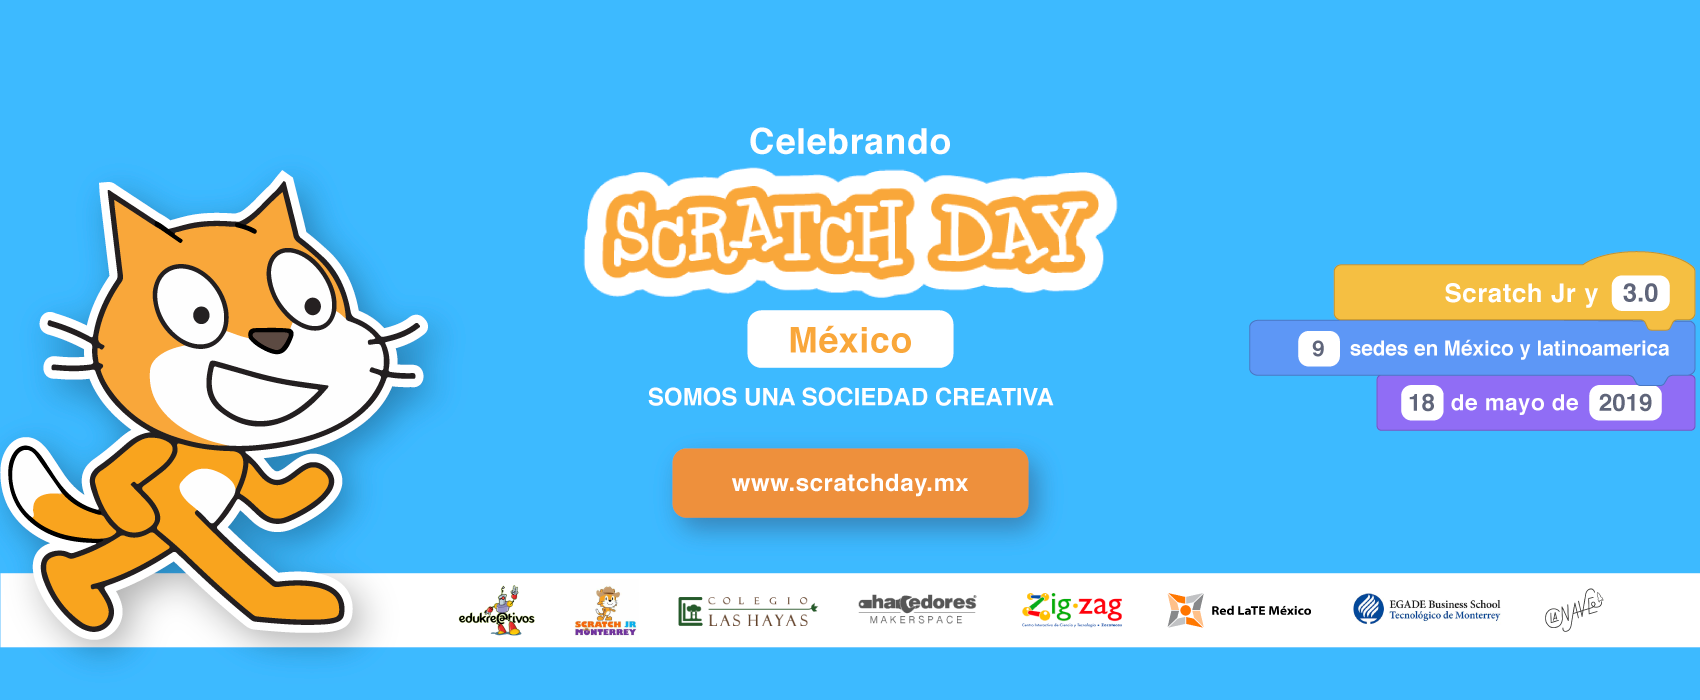 Scratch Day México 2019